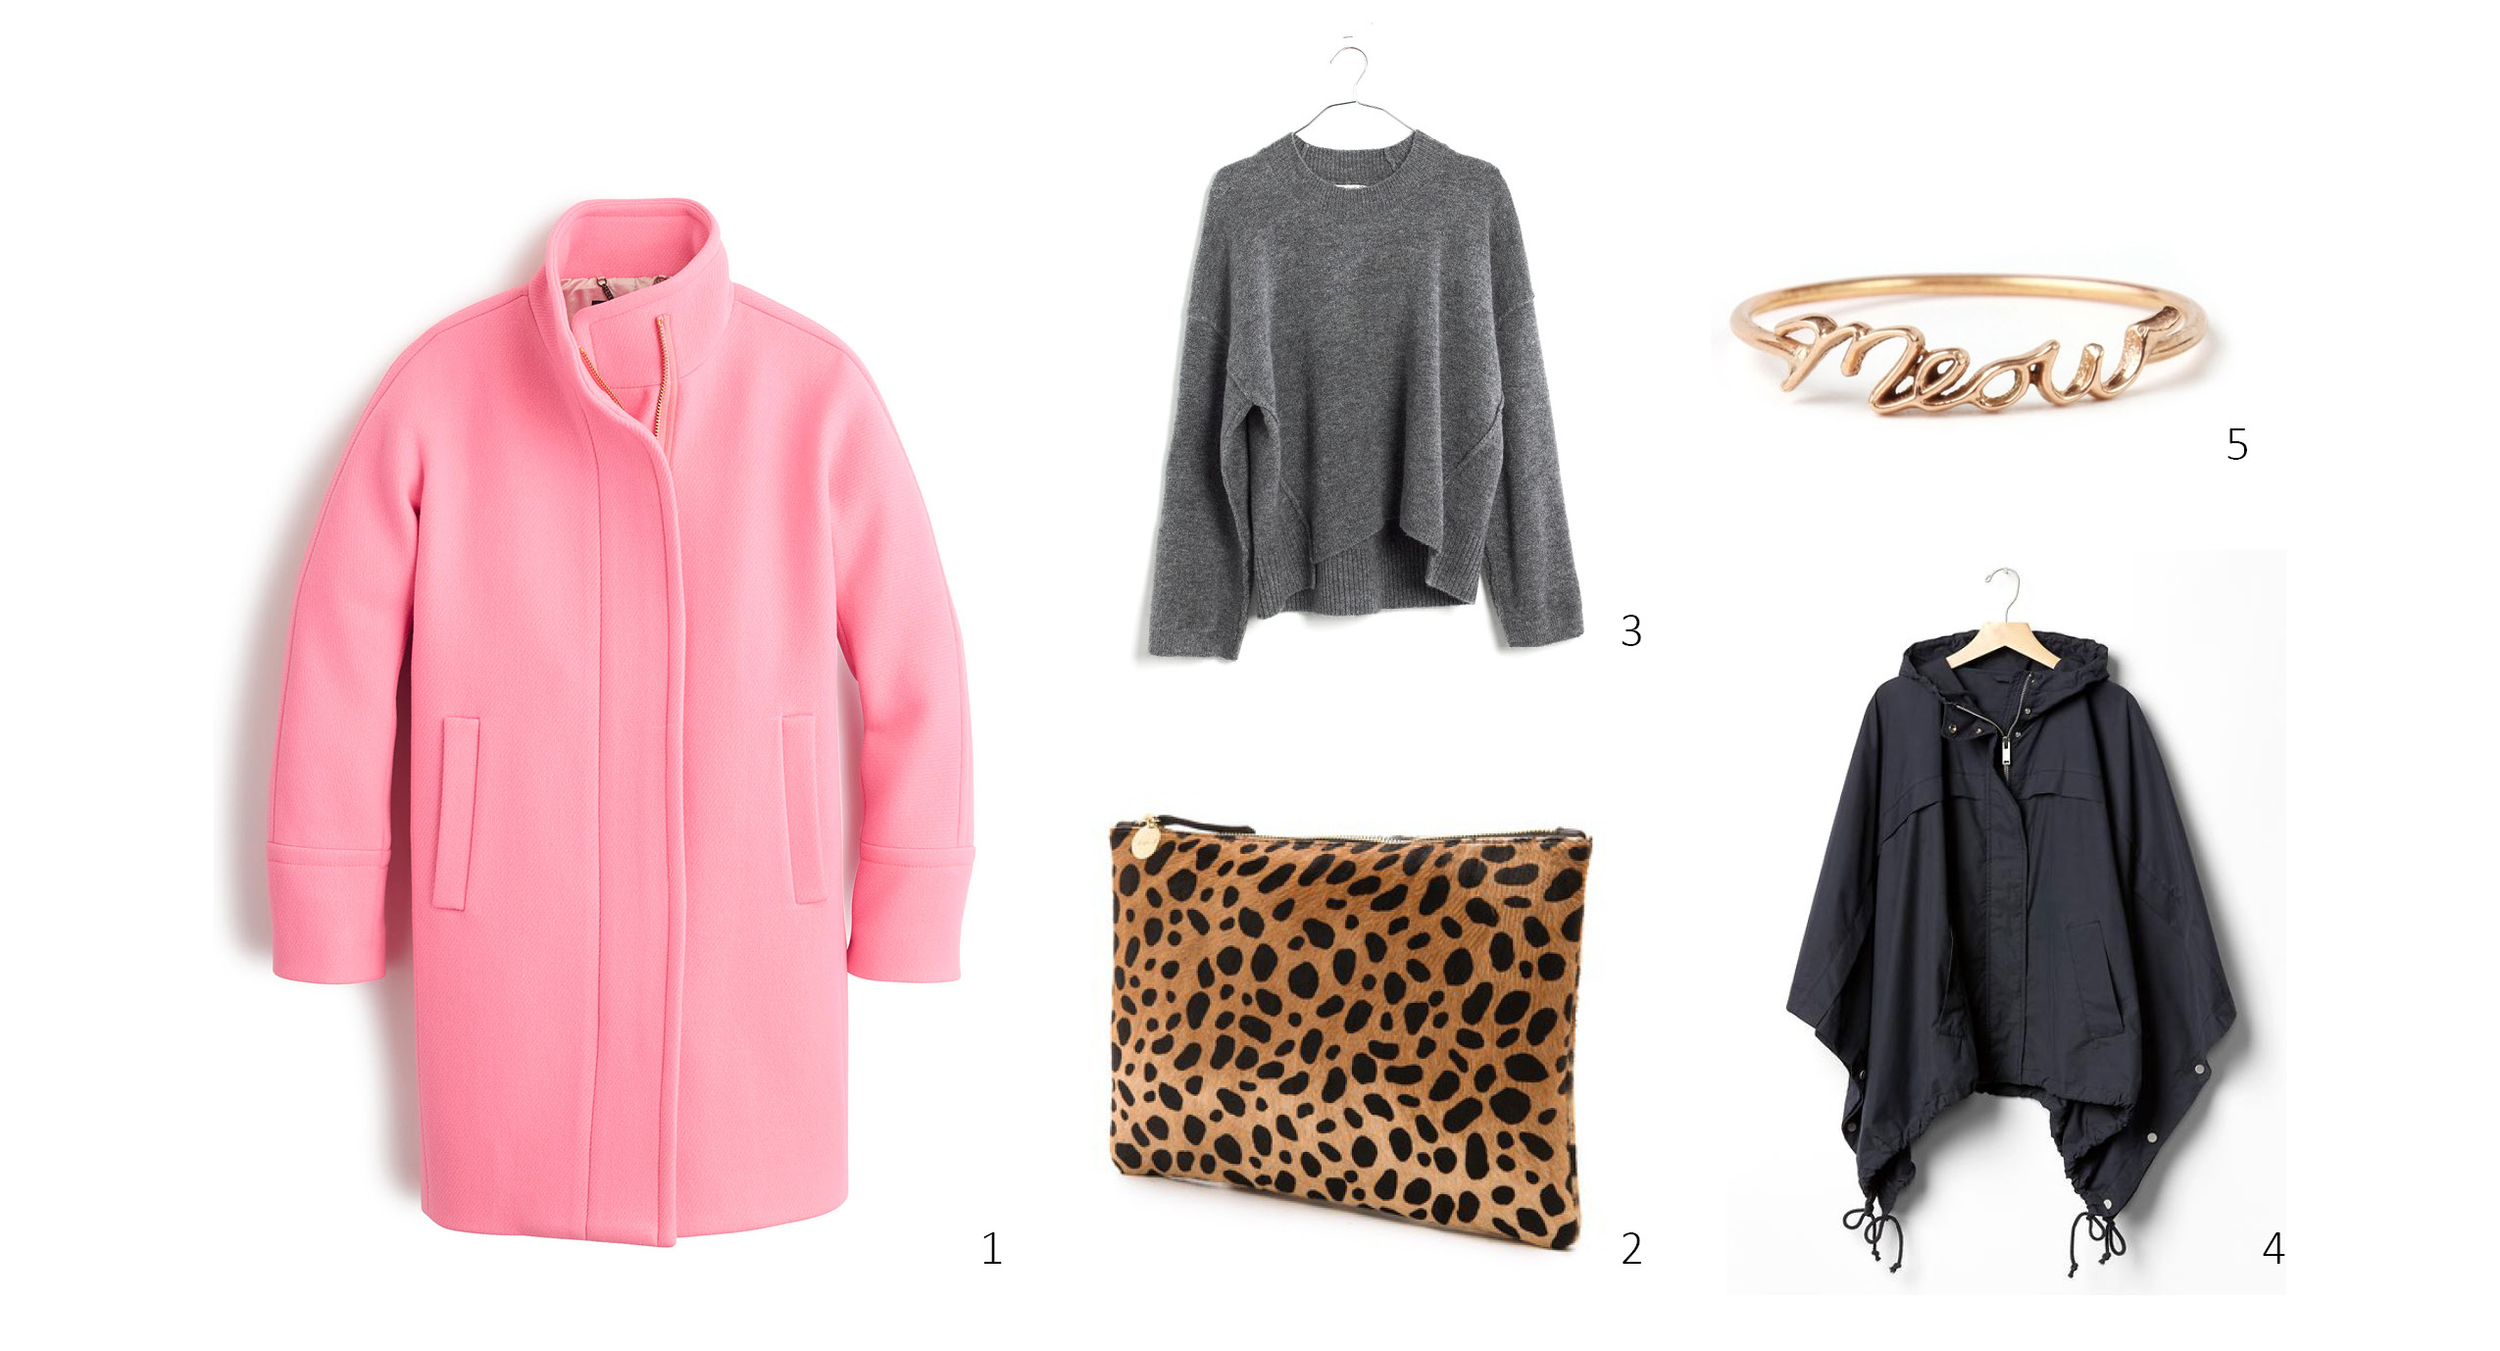 1. J.Crew Stadium-Cloth Cocoon Coat $350 ; 2. Clare V Flat Clutch $245 ; 3. Madewell Connection Sweater $79.99 ; 4. Gap Poncho $72.99 (additional 40% off with Friends and Family code through11/8) ; 5. Catbird Hortense Cats Meow Ring $318